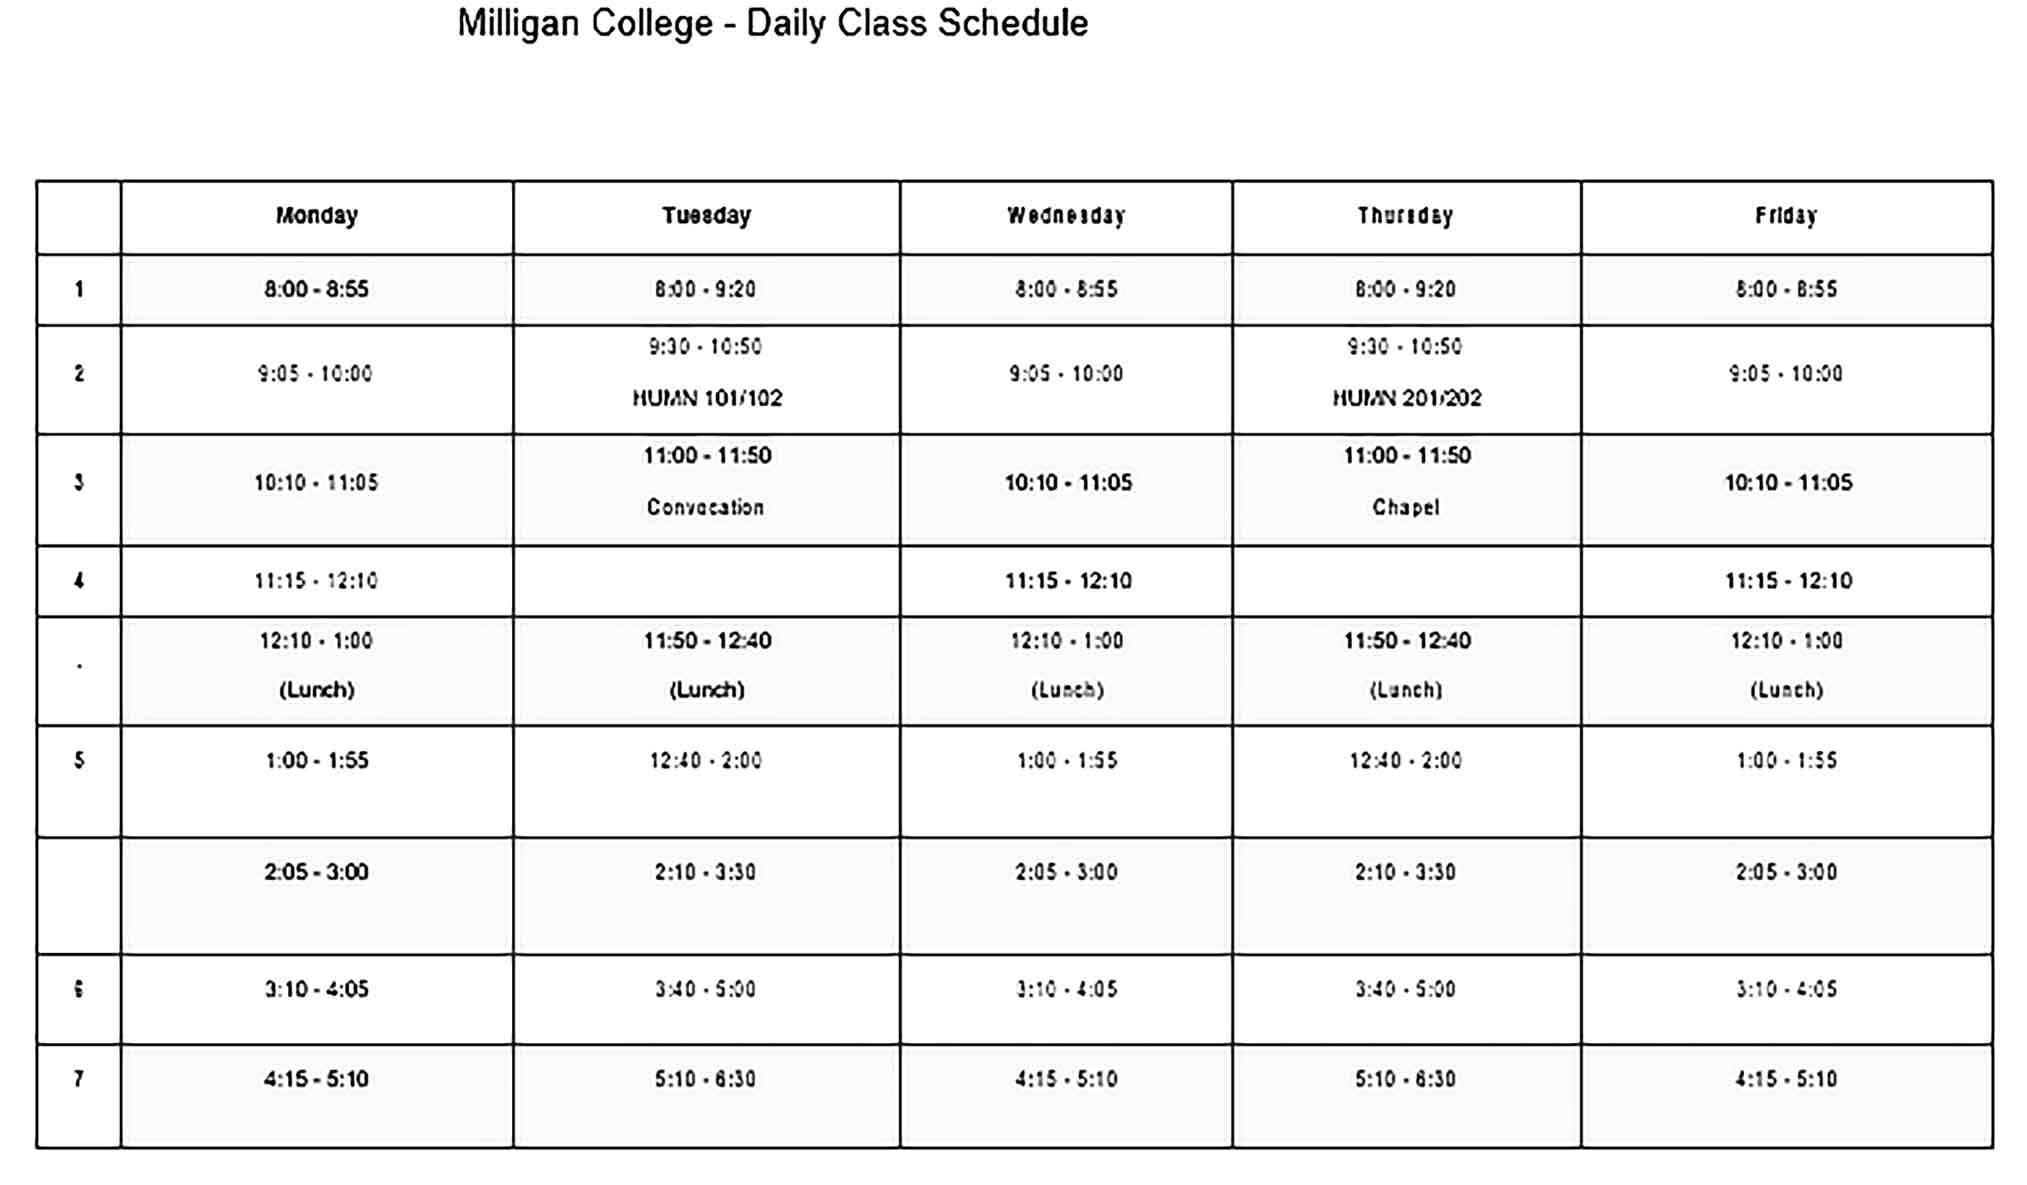 Template College Daily Class Schedule Sample Copy